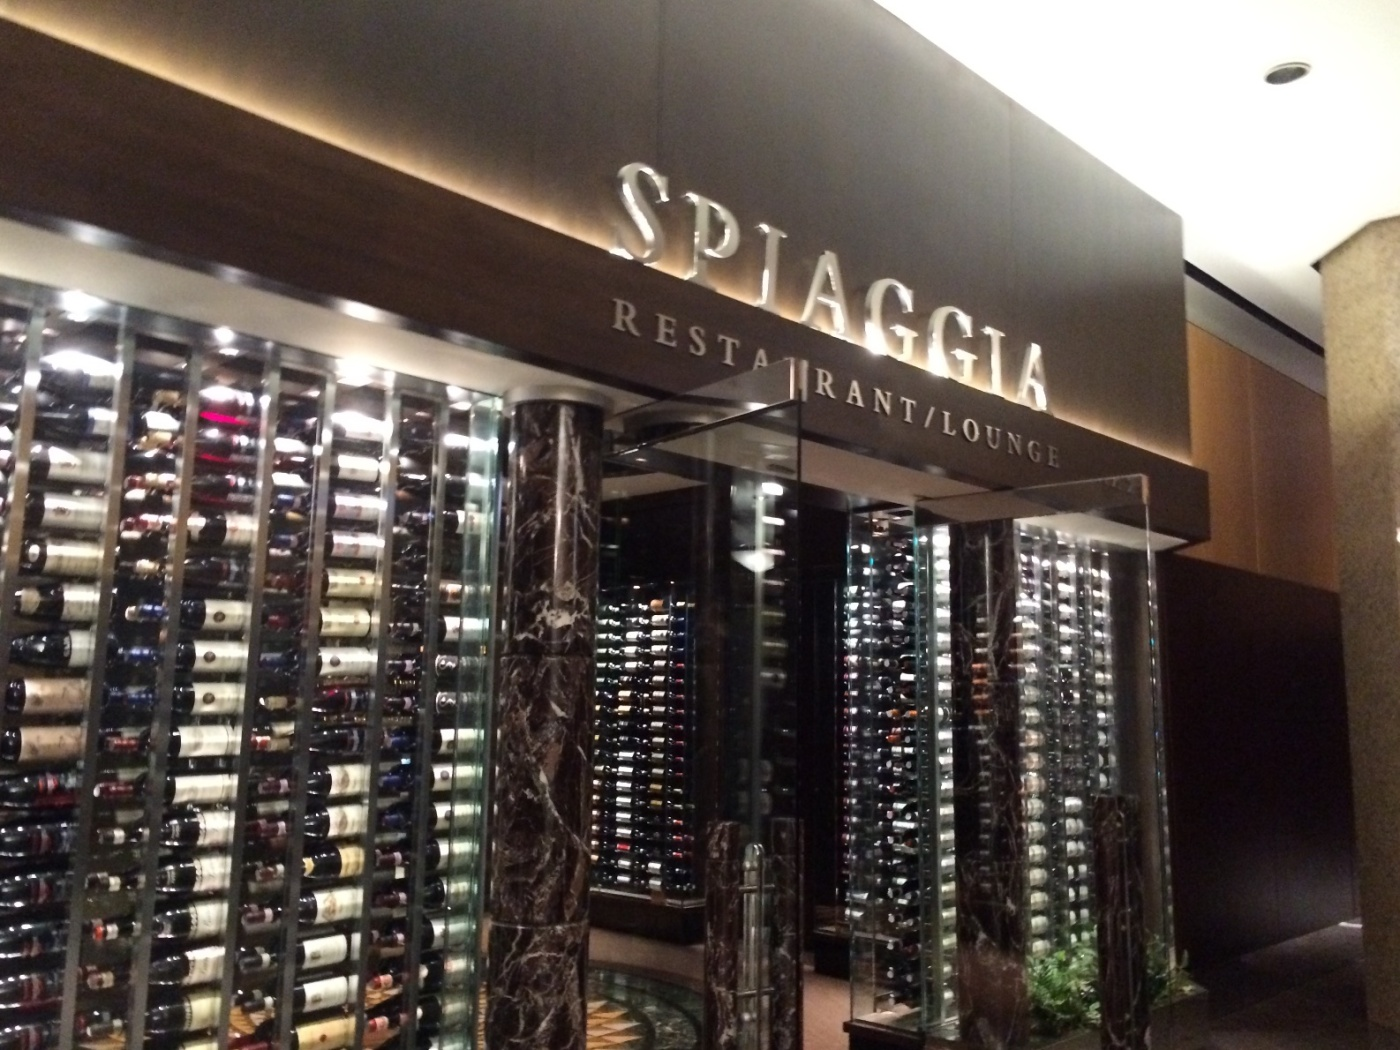 Spiaggia, 980 North Michigan Avenue, Chicago IL